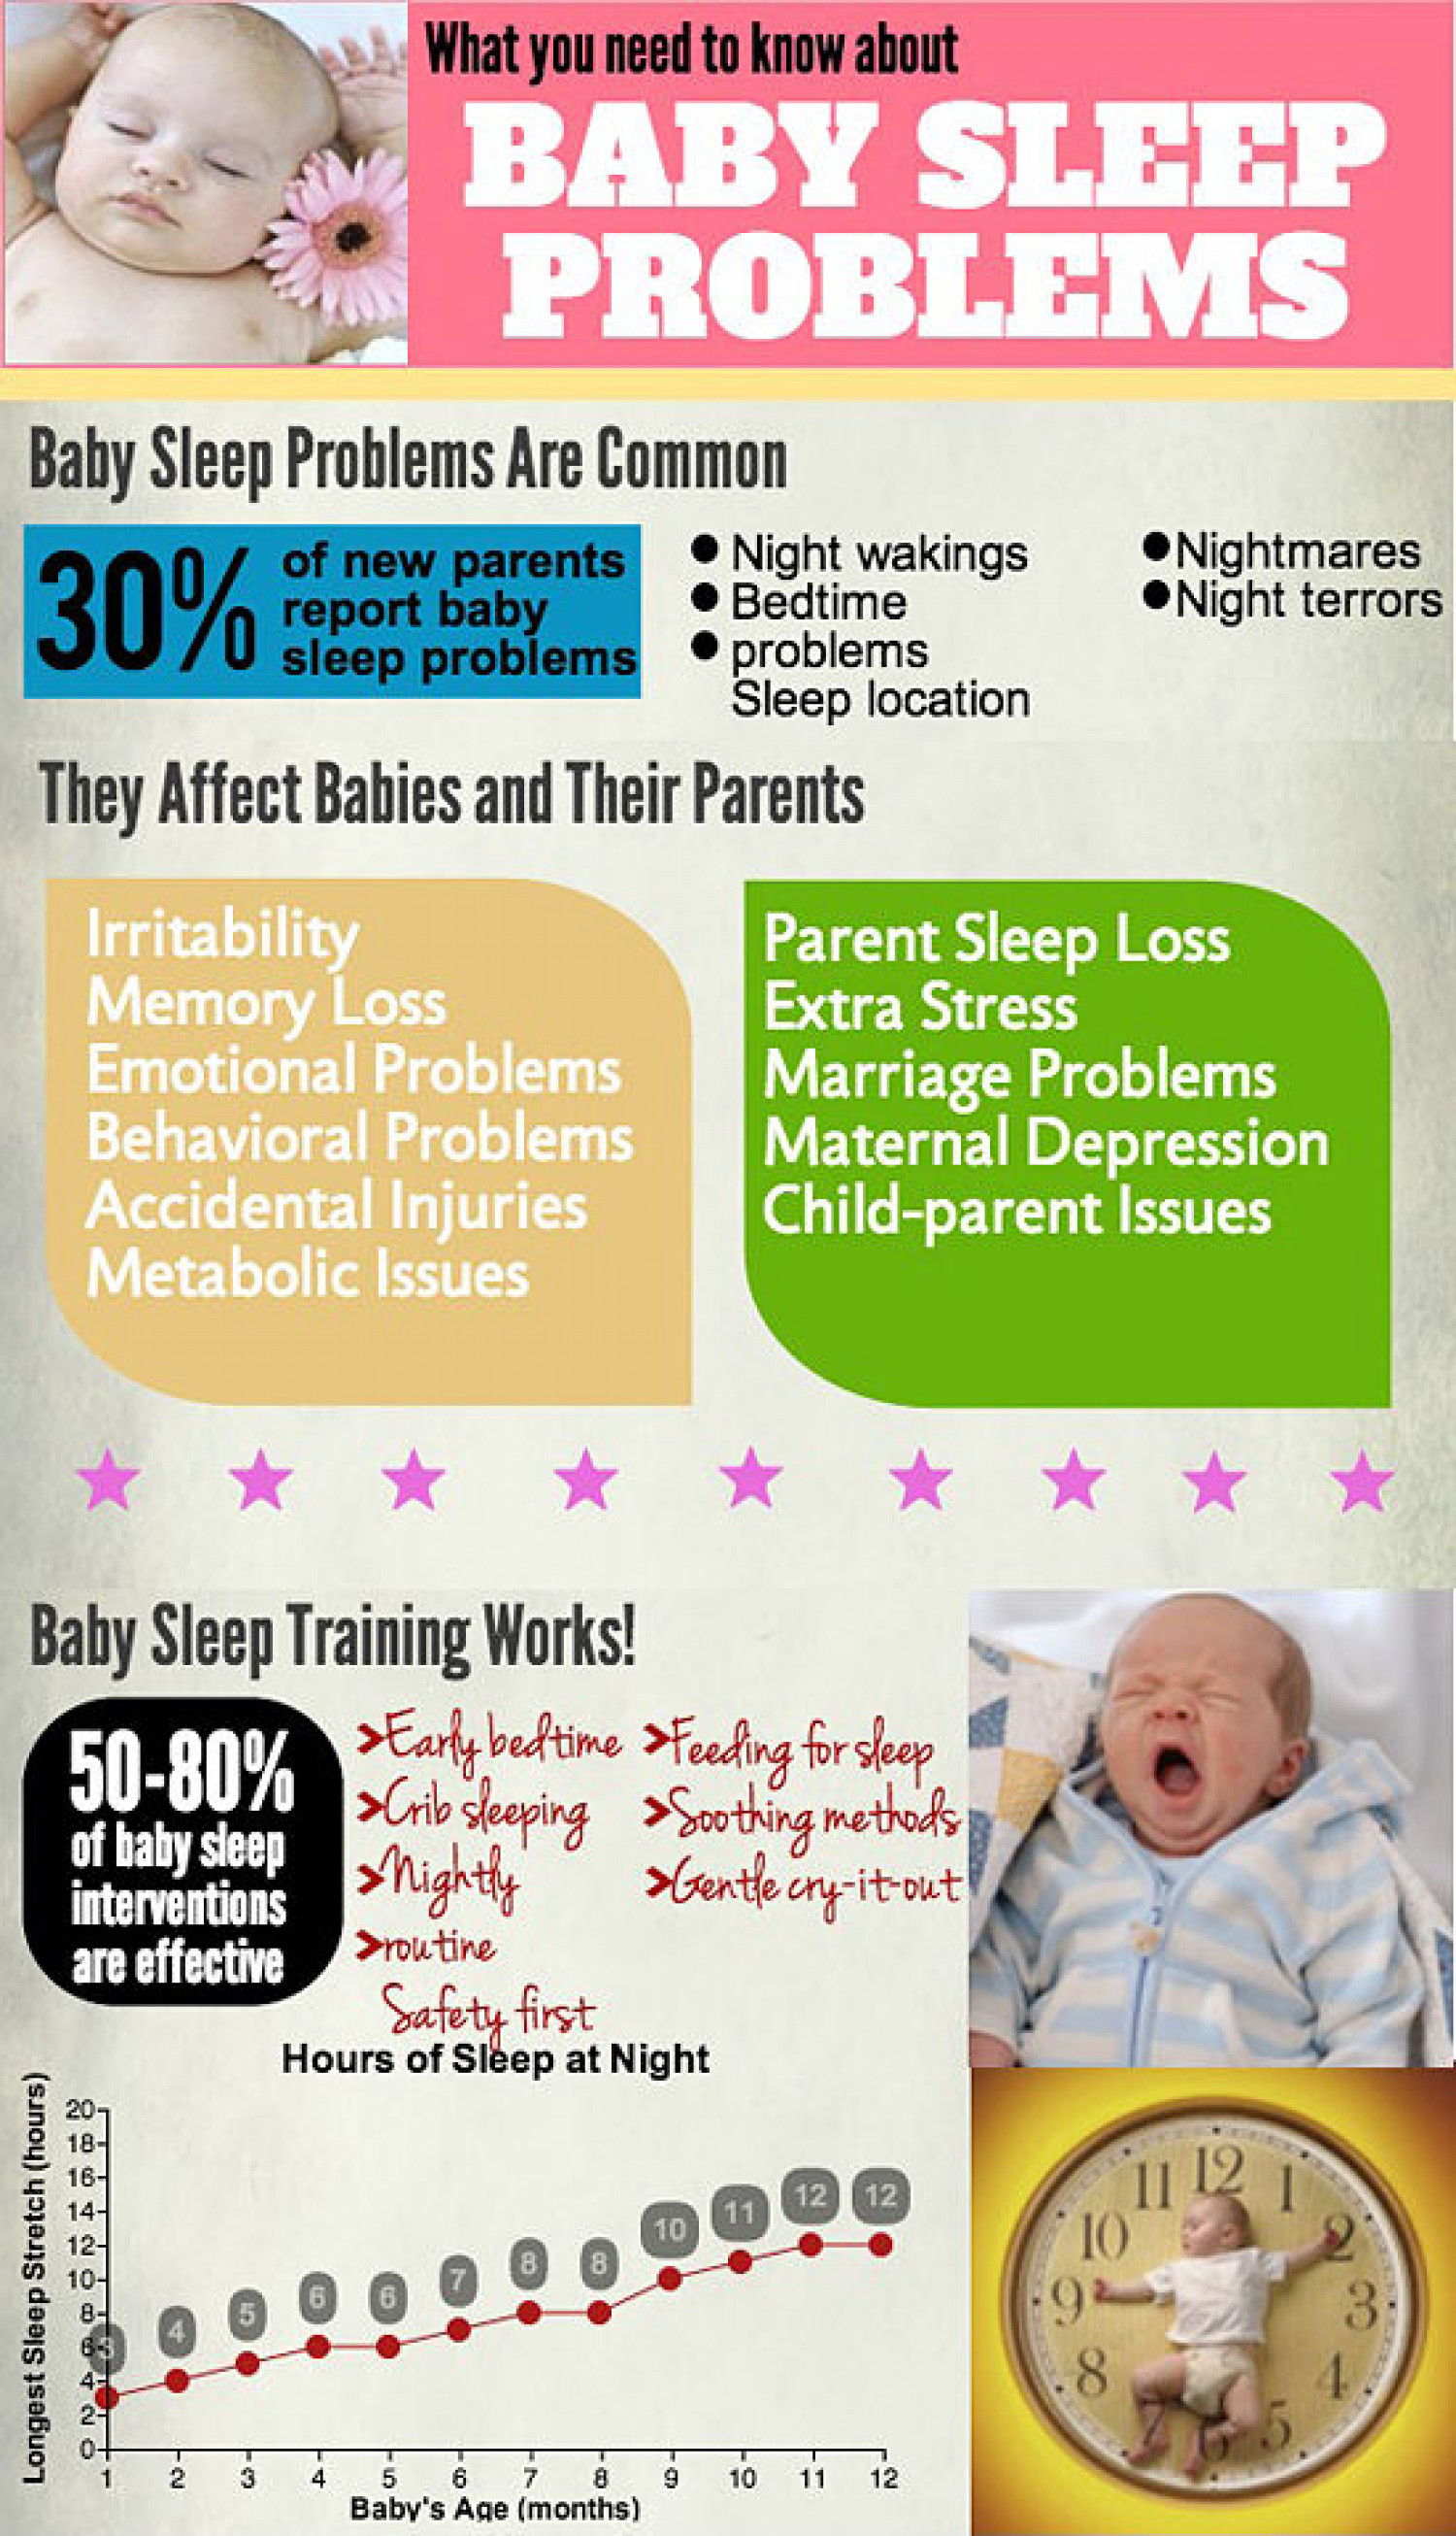 Baby Sleep Problems: What You Need to Know Infographic